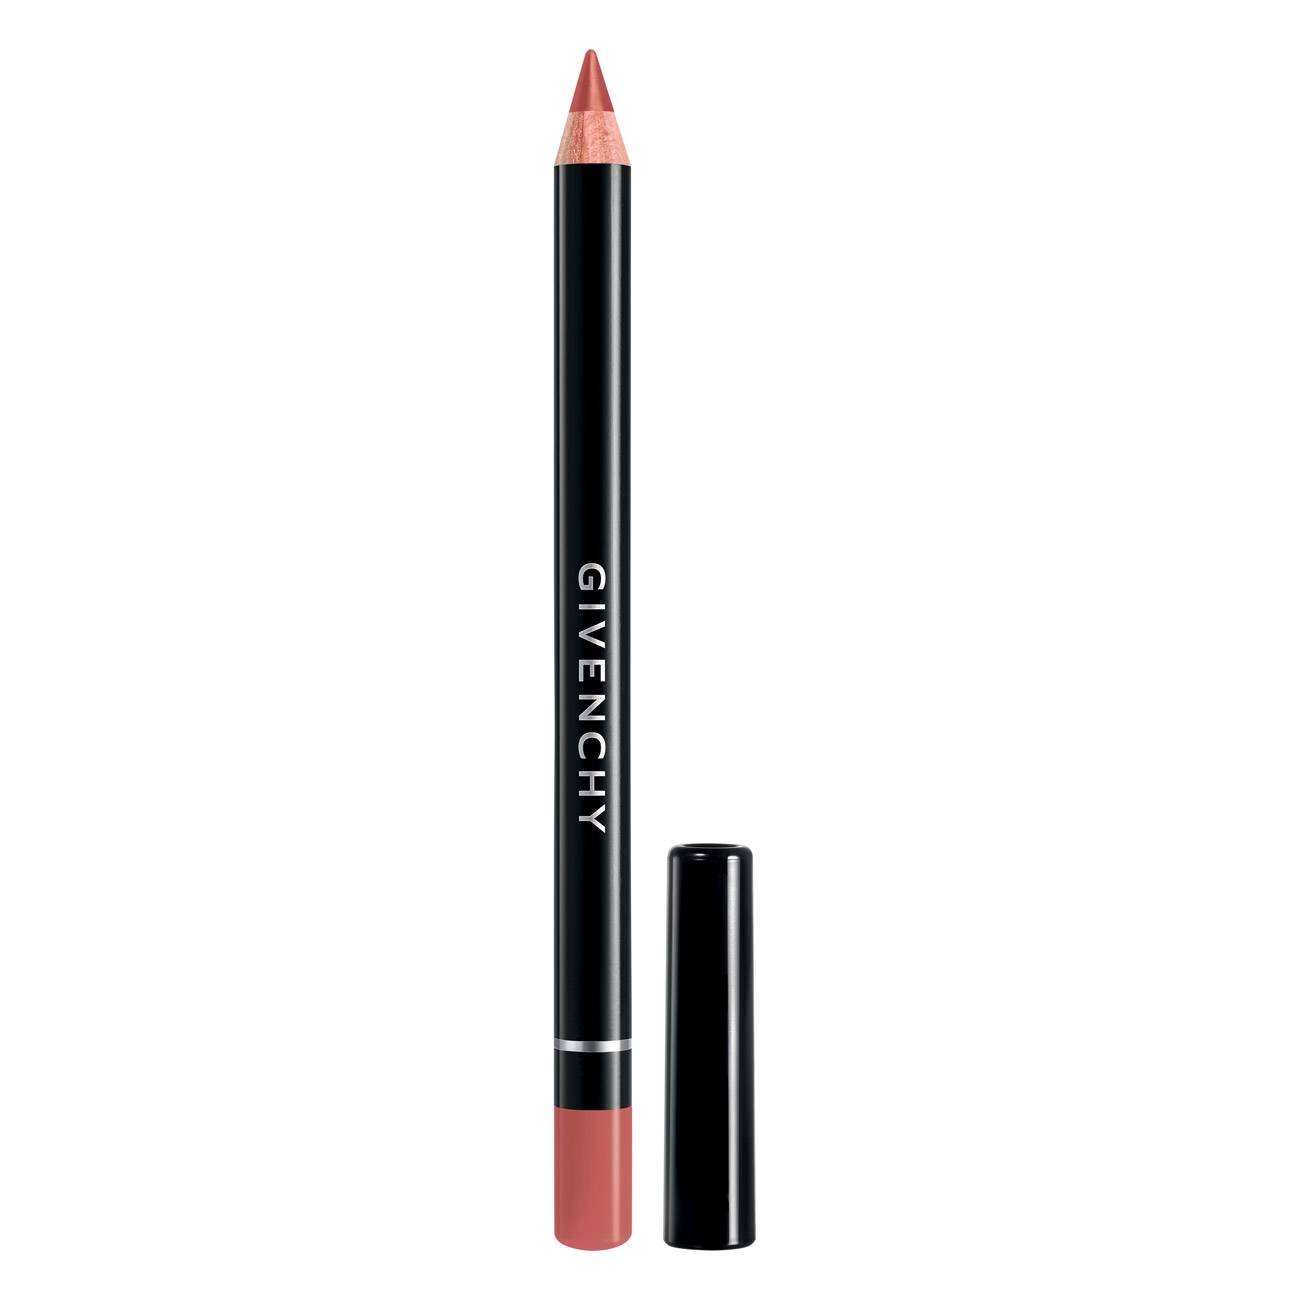 Lip Liner 1 G Brun Createur 2 Givenchy imagine 2021 bestvalue.eu